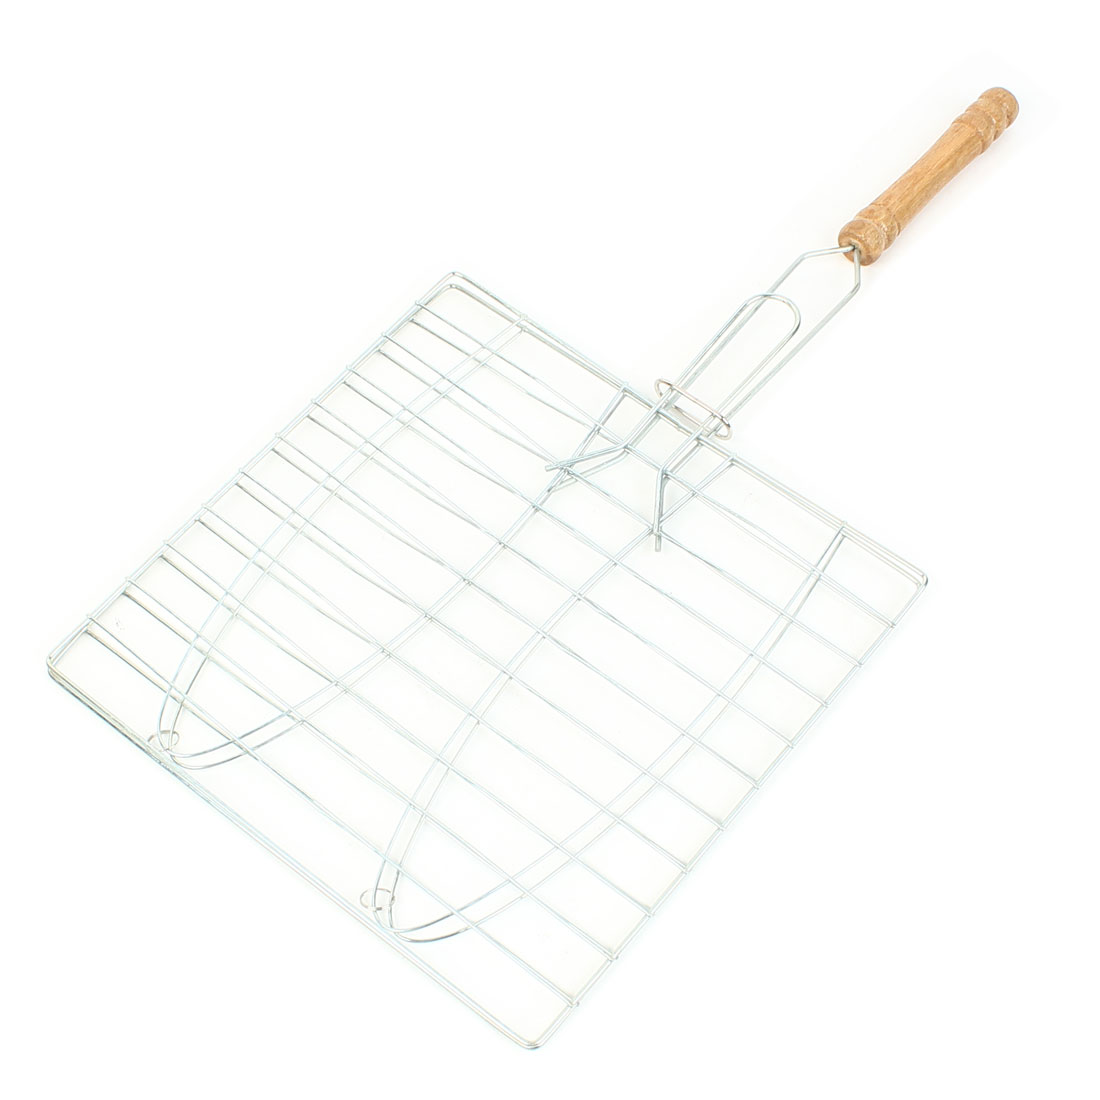 22 cm x 22 cm Outdoor Nonslip Wood Grip Rectangular Grill Net Barbecue Clamp